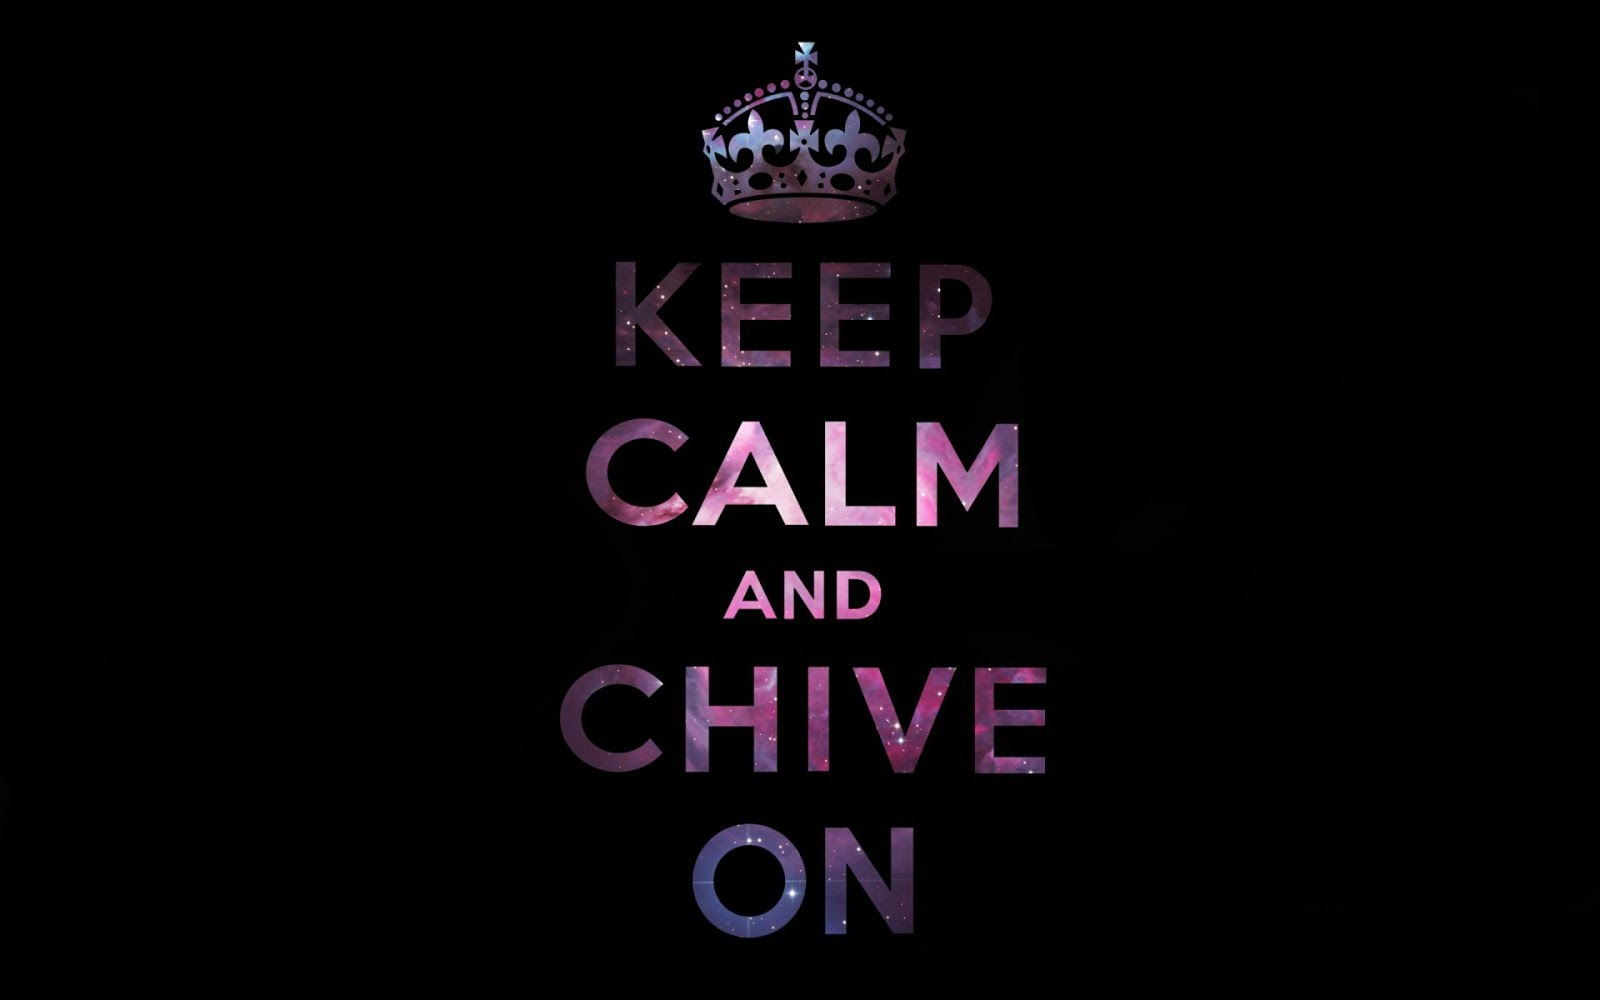 keep calm and black background kcco the chive chiveon HD Wallpapers 1600x1000